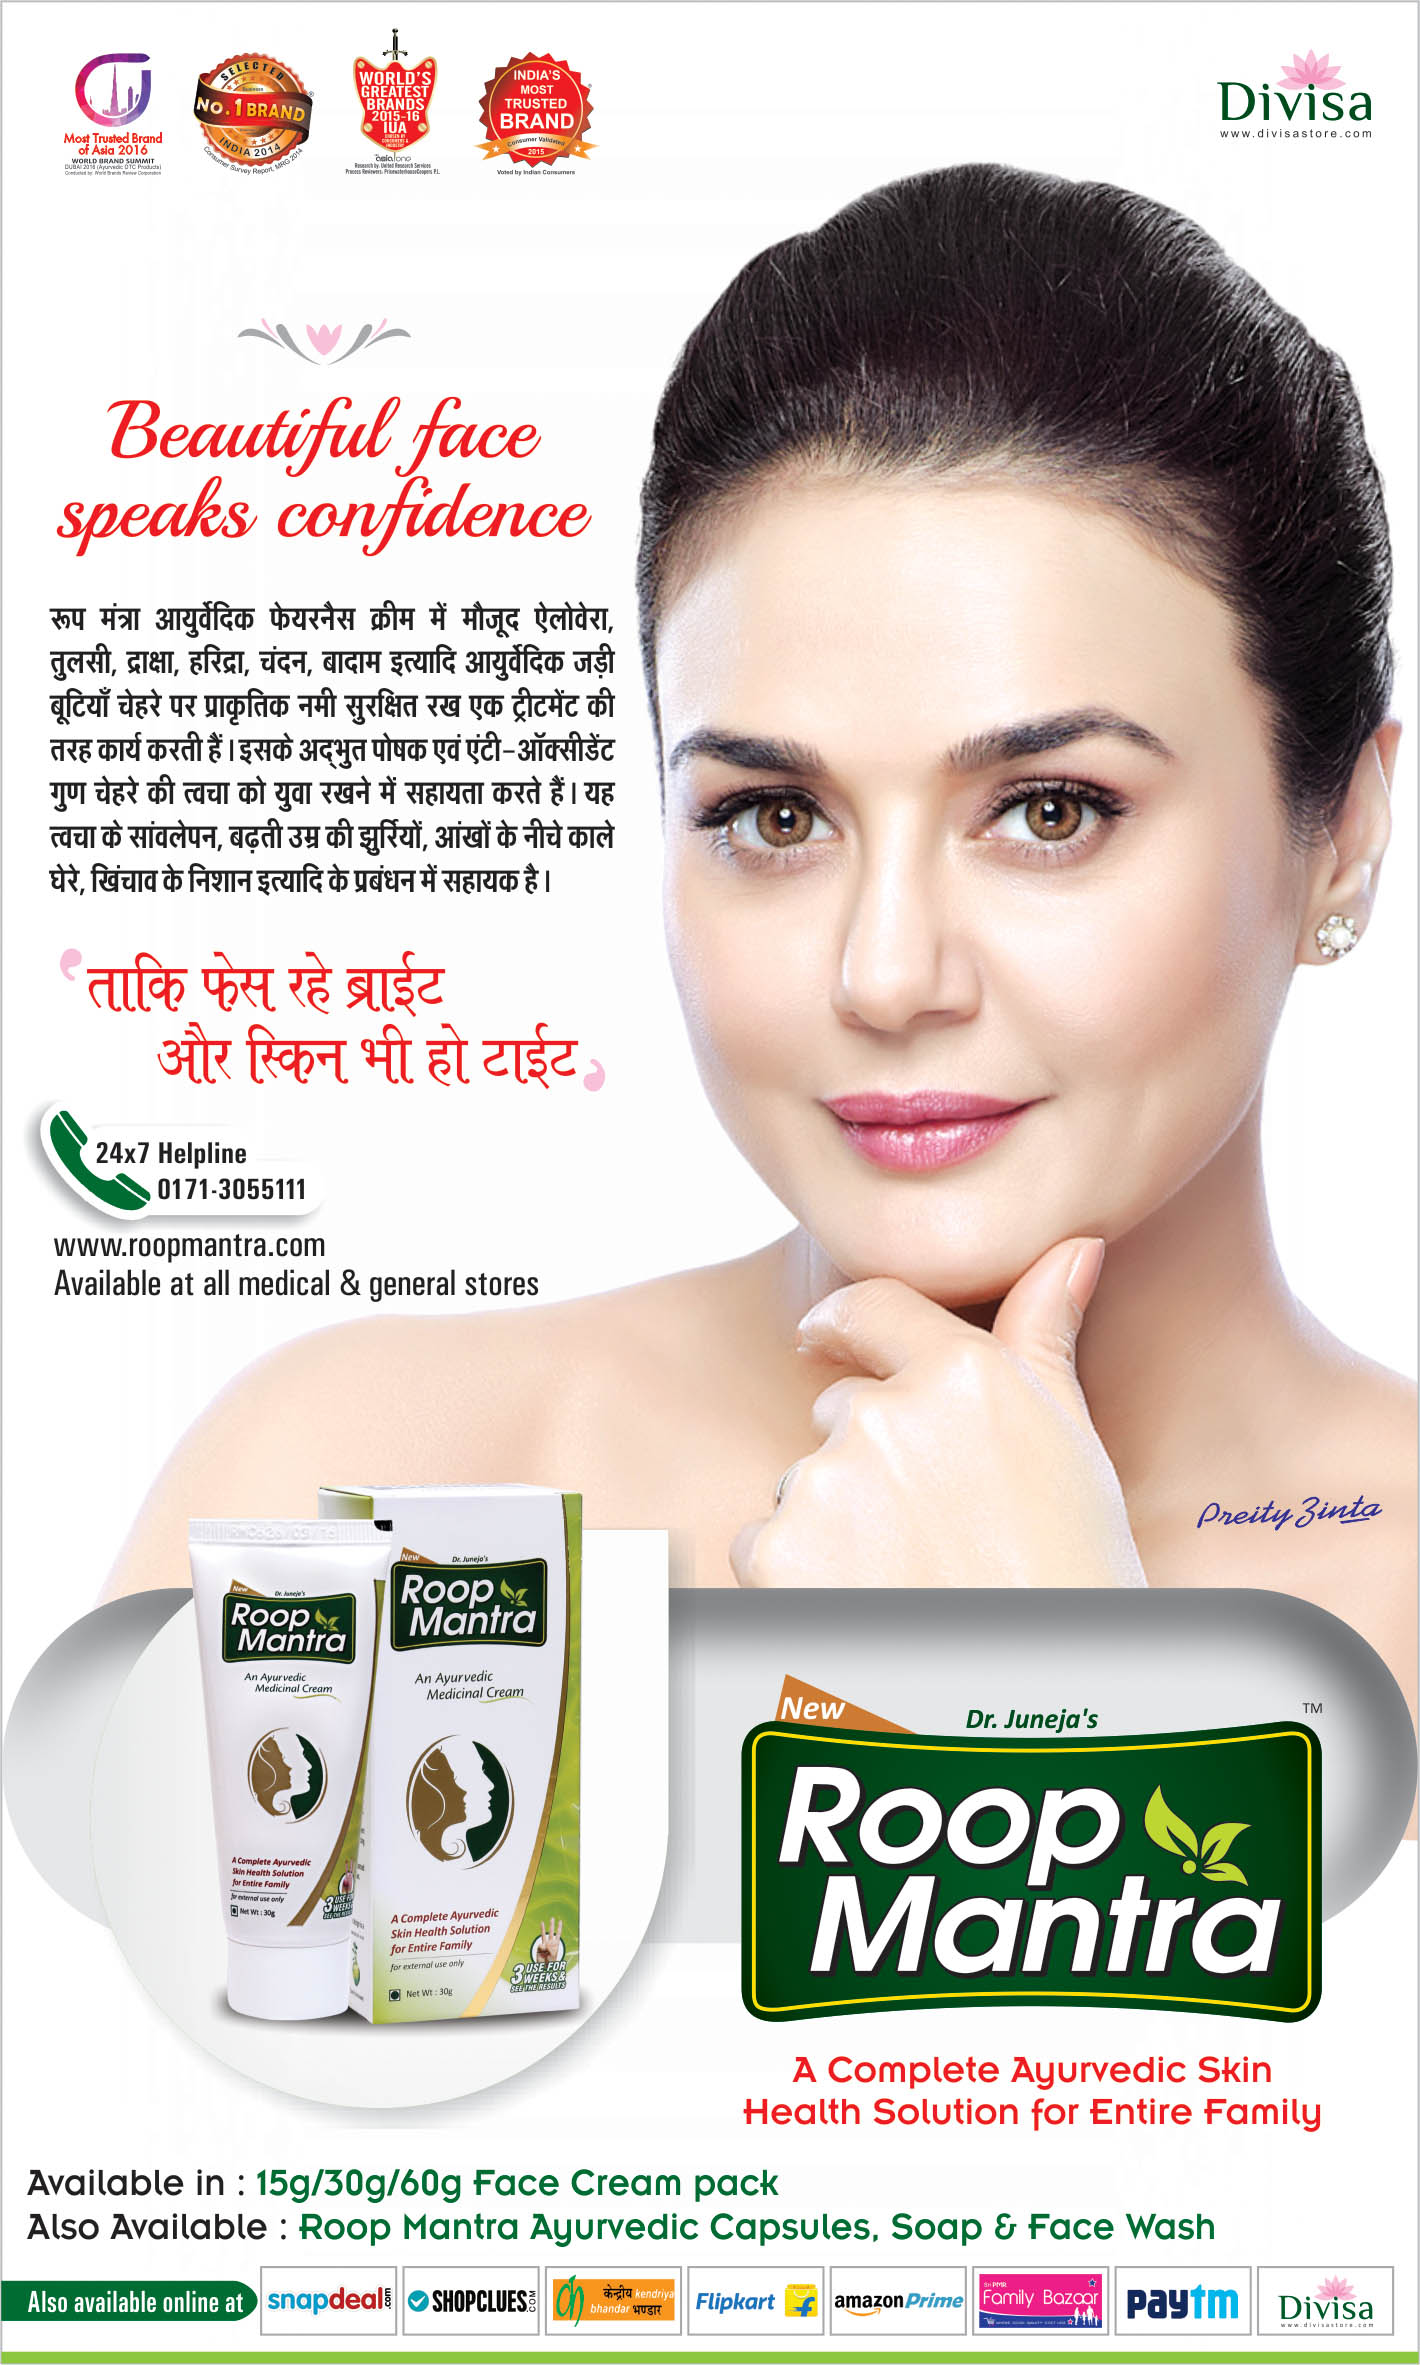 Roop Mantra Ayurvedic Tips For Oily Skin